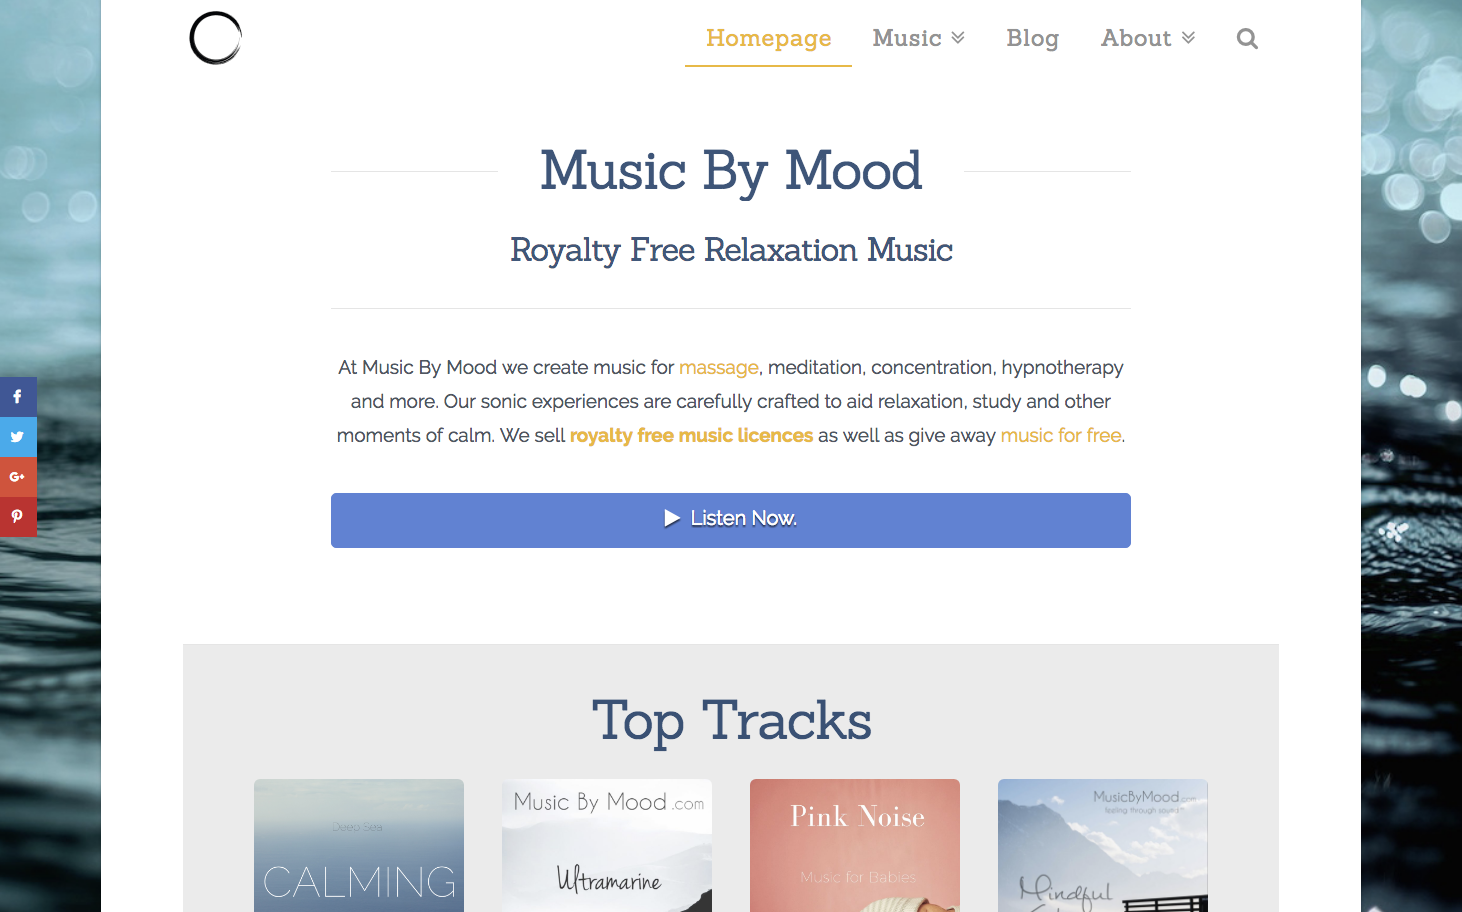 Music By Mood